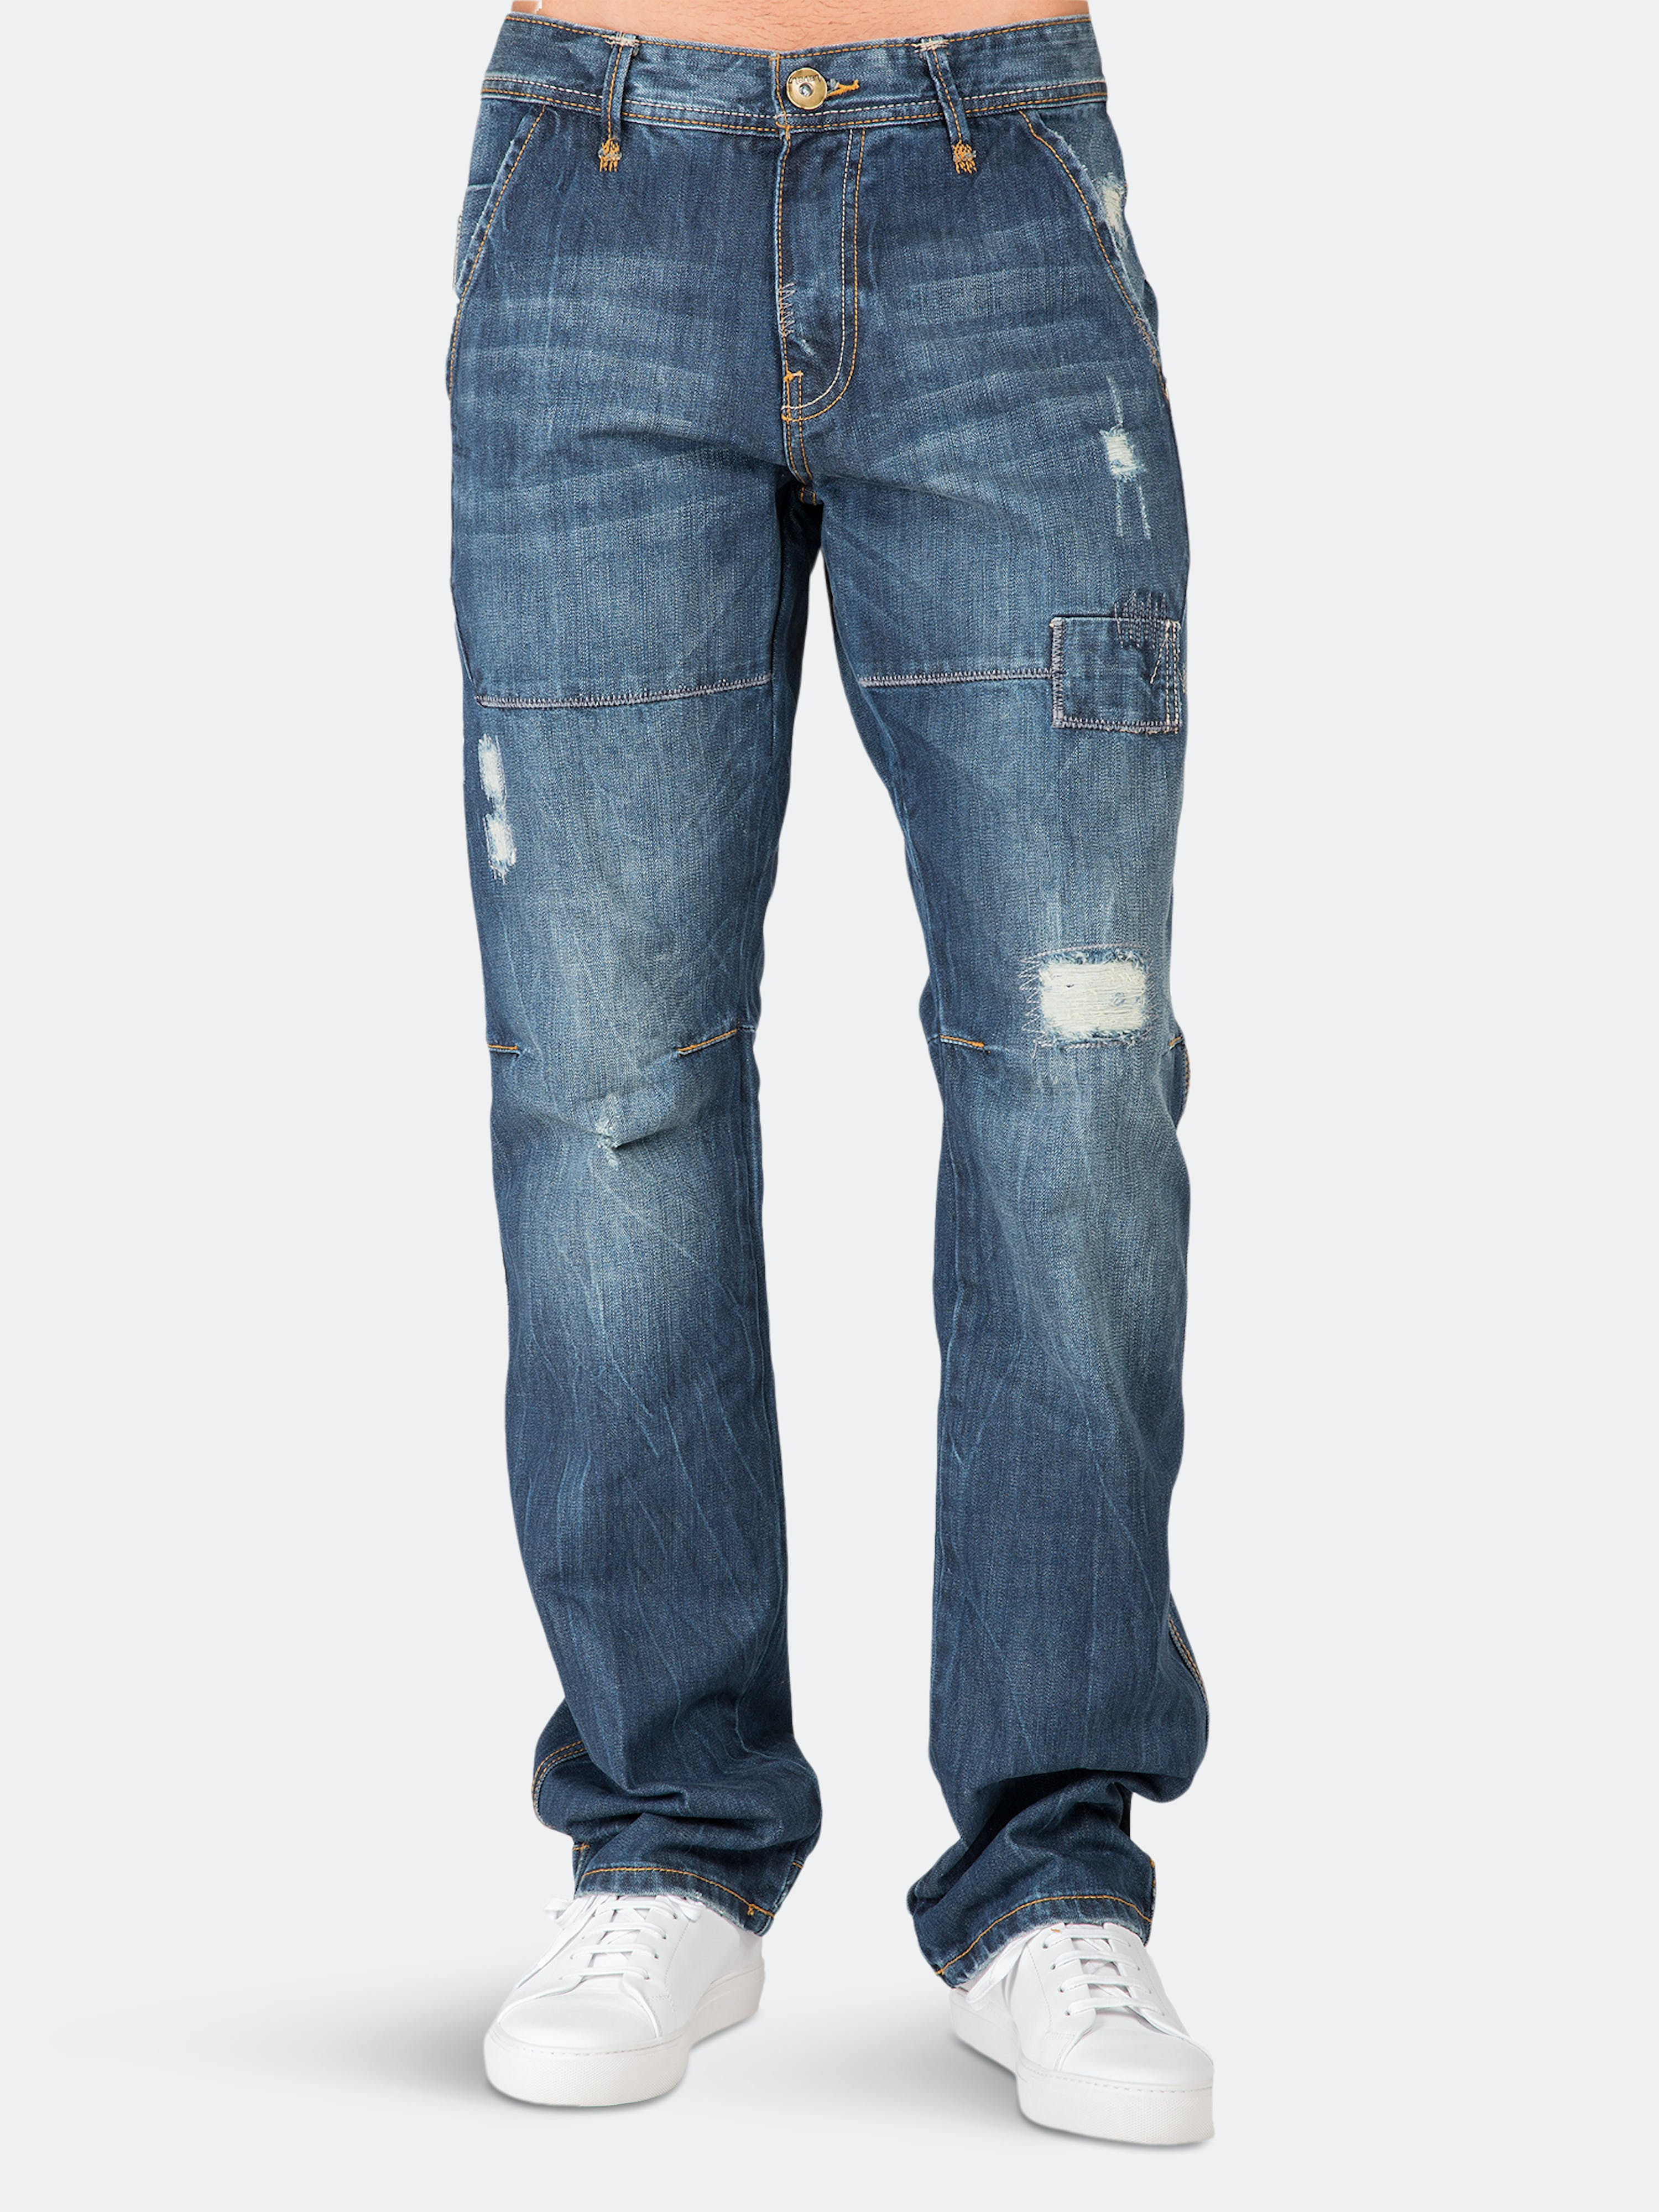 Level 7 Slim Straight Premium Jeans Vintage Whisker Ripped & Repaired In Blue